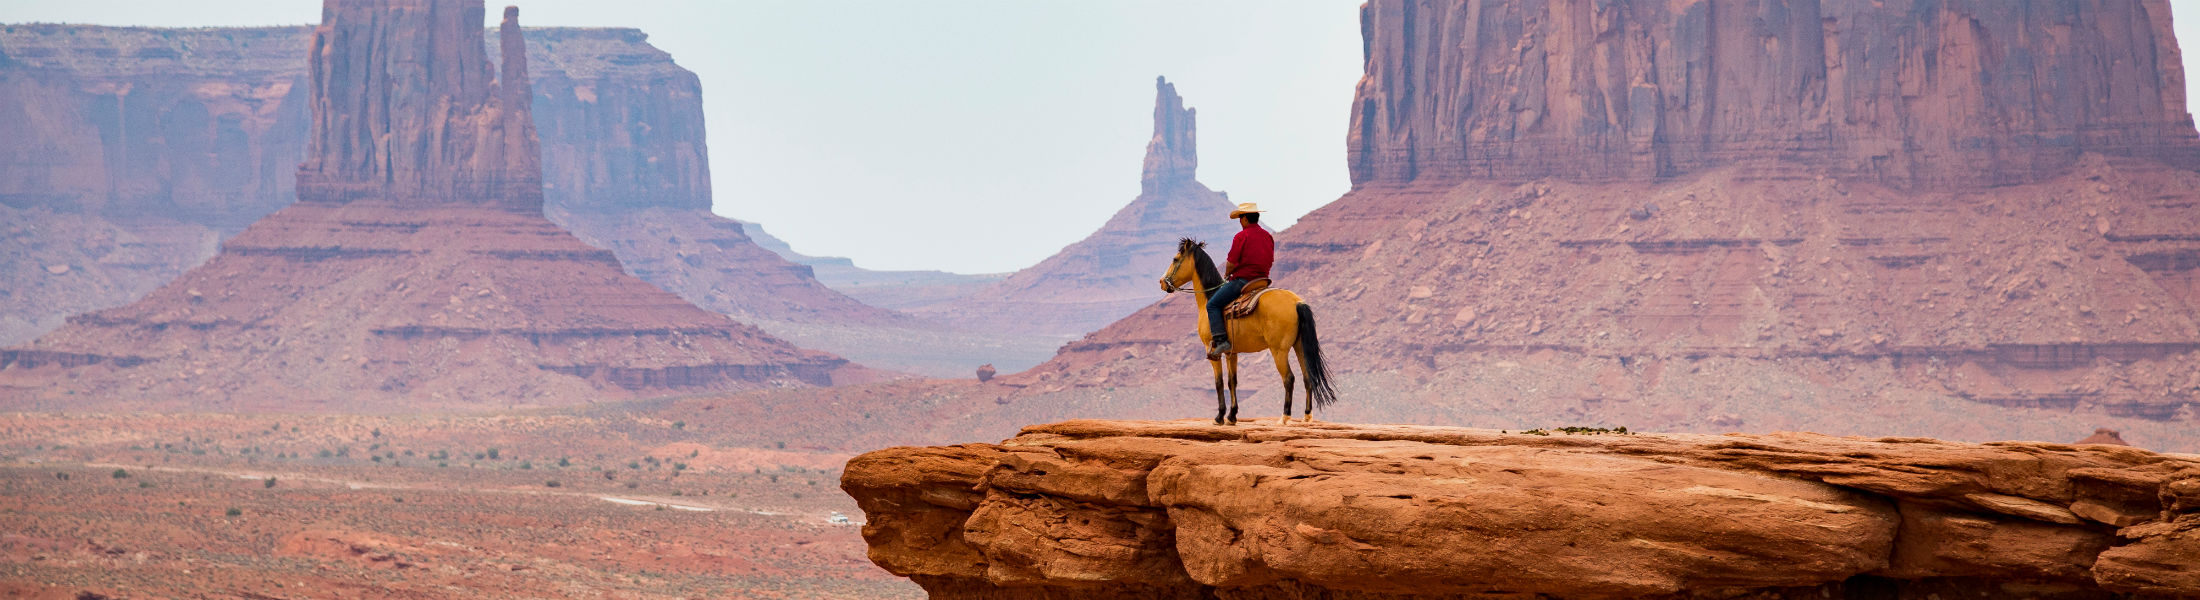 Cowboy looking at the horizon Monument Valley Navajo Tribal Par